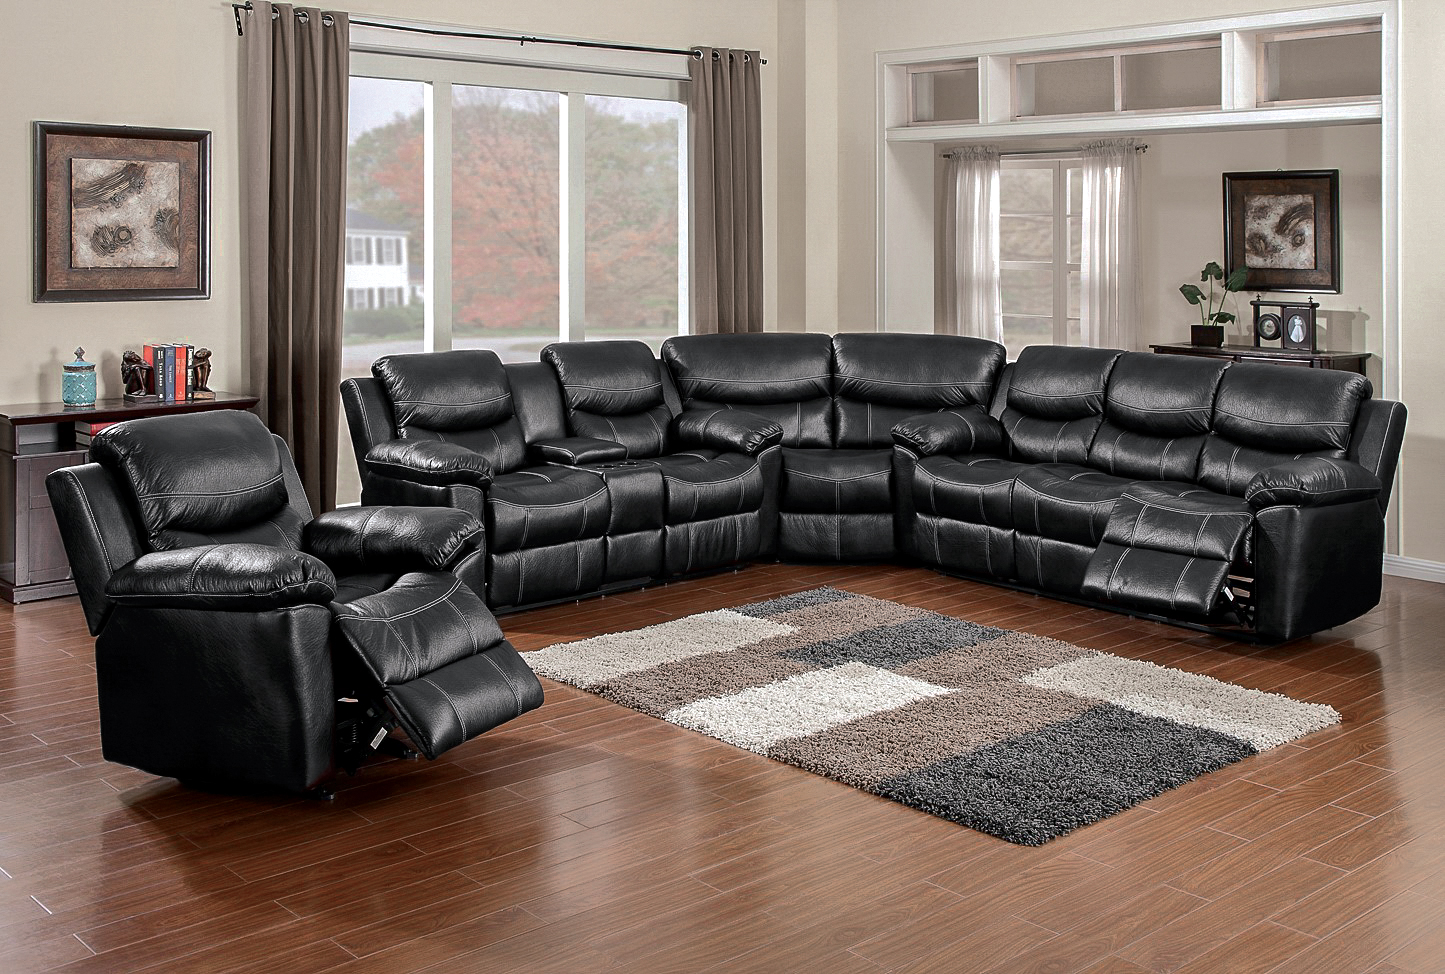 3pc recliner sofa set ligne roset nomade 66008 champion black sectional  awfco catalog site